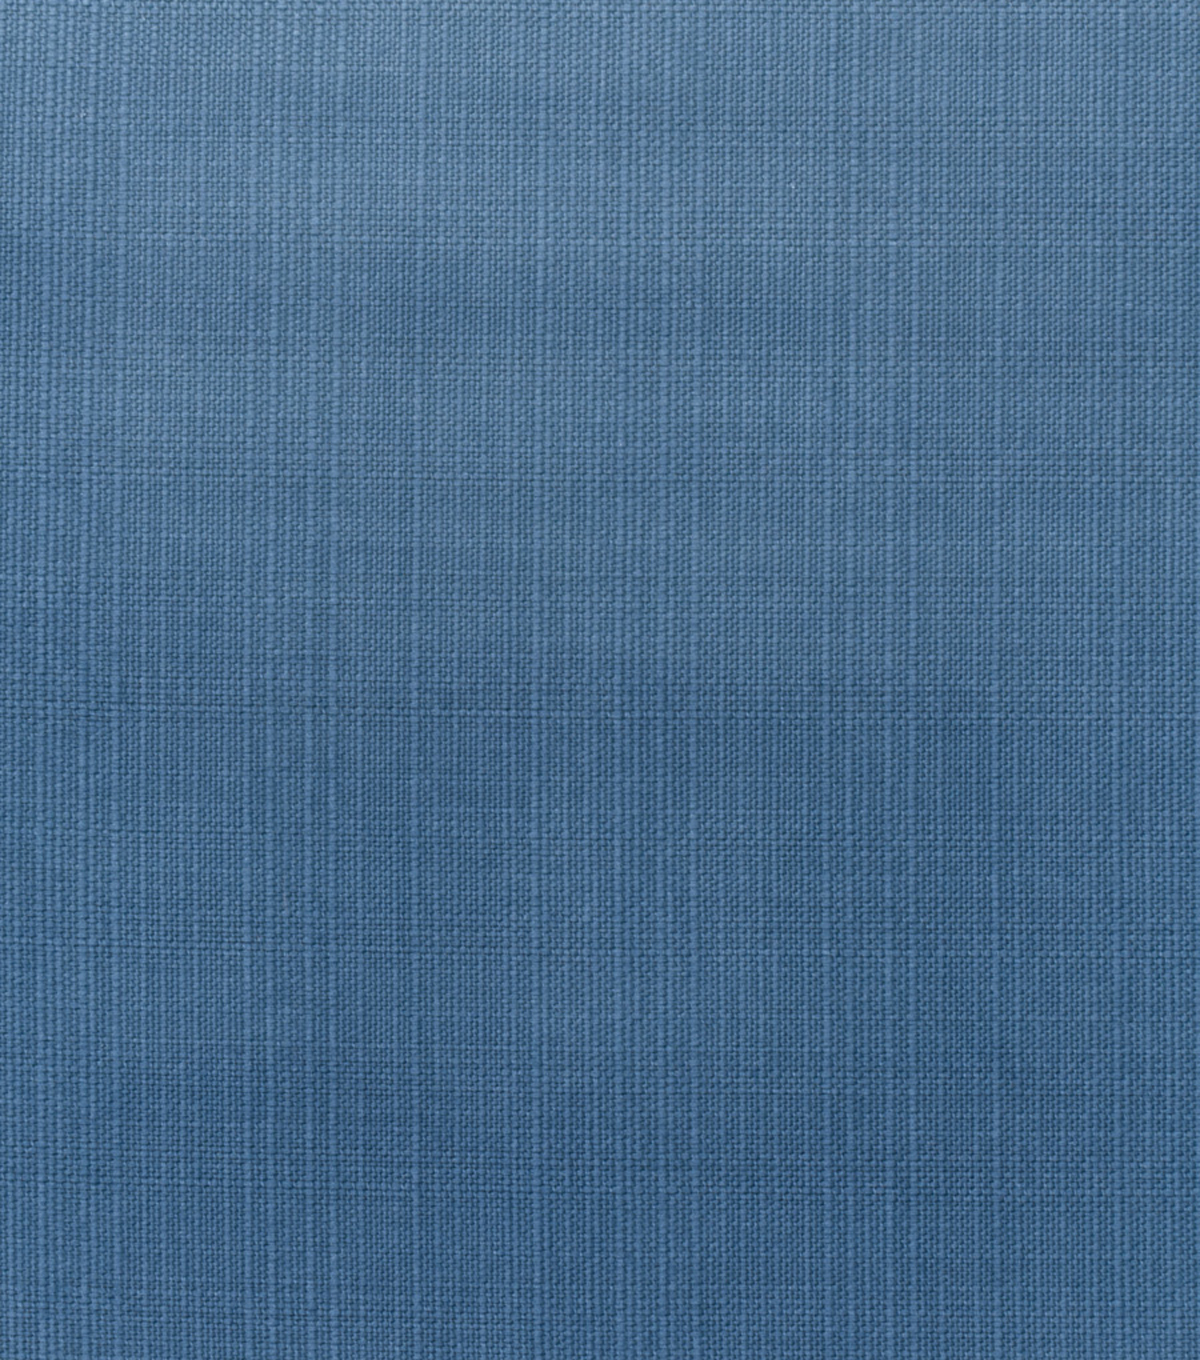 Home Decor 8\u0022x8\u0022 Fabric Swatch-Eaton Square Parrot Denim